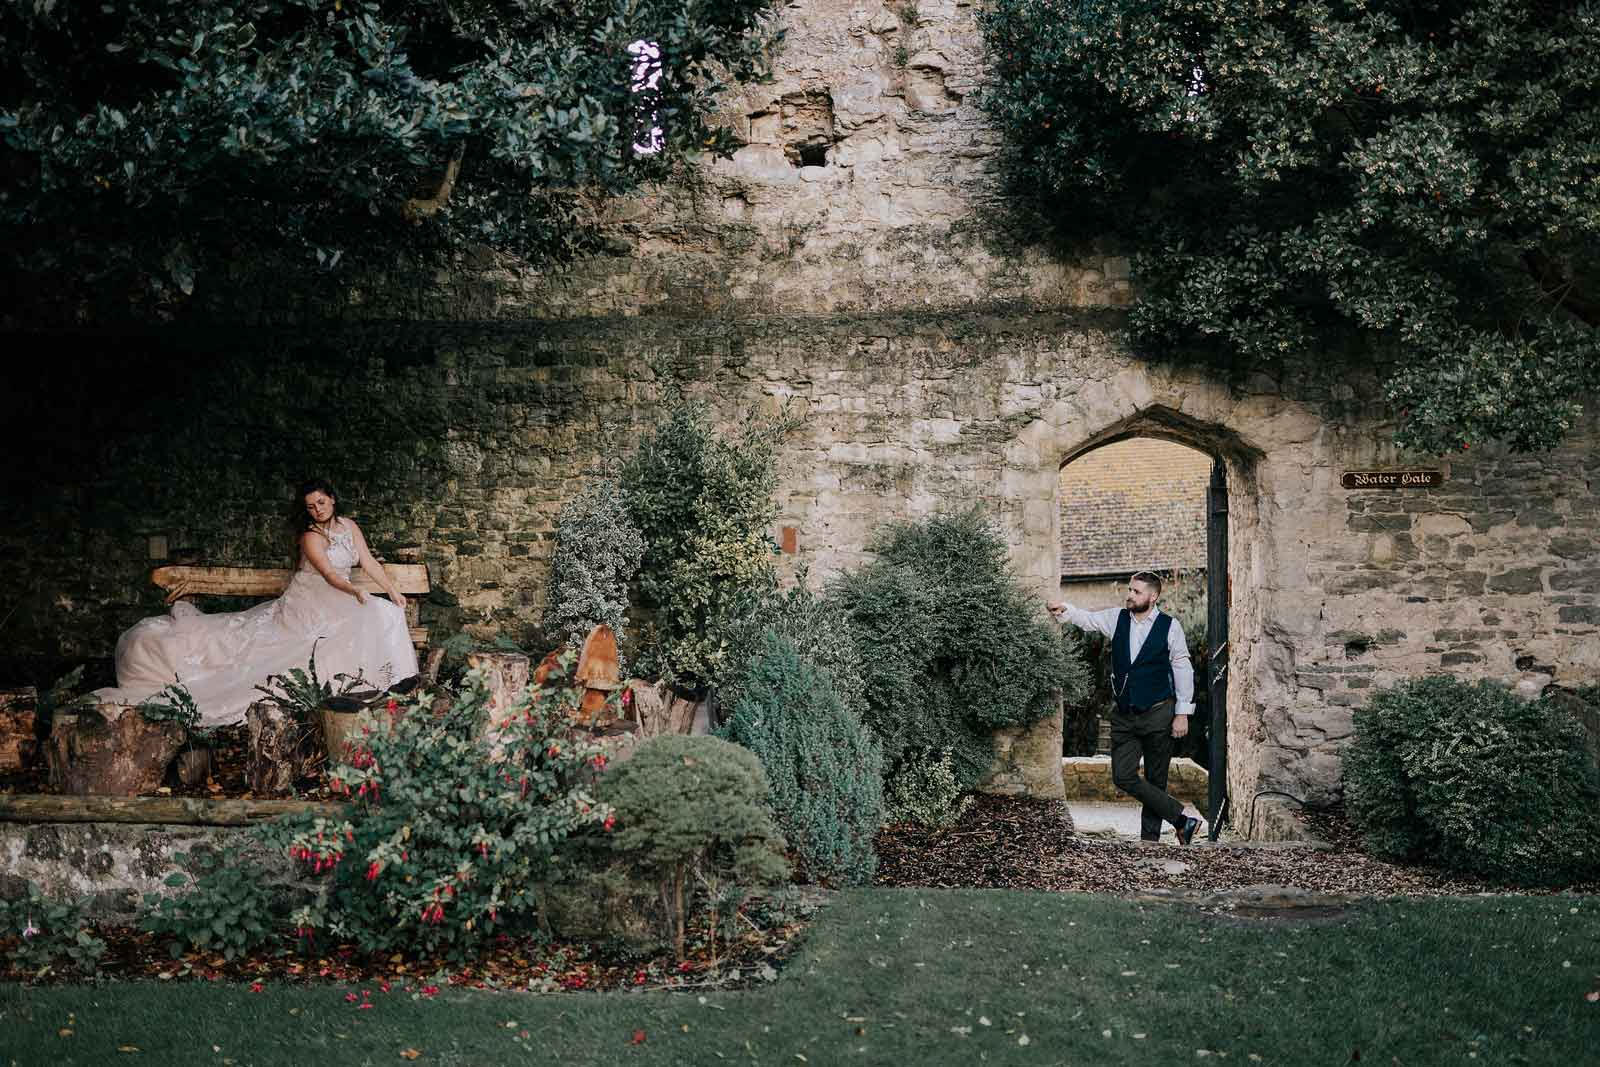 Stunning background with bride and groom